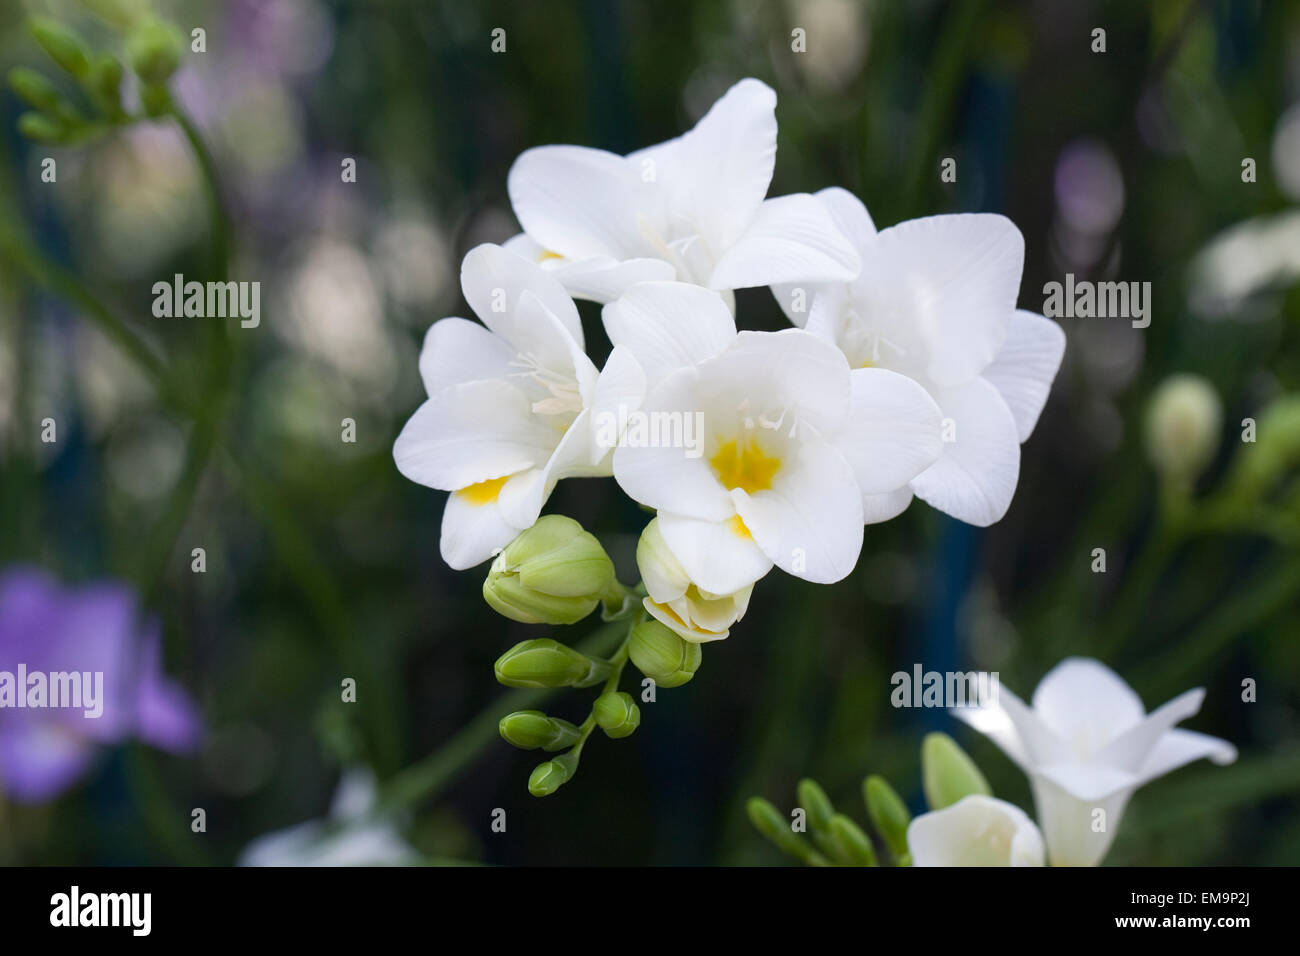 White Freesia Flower Growing In A Protected Environment Stock Photo